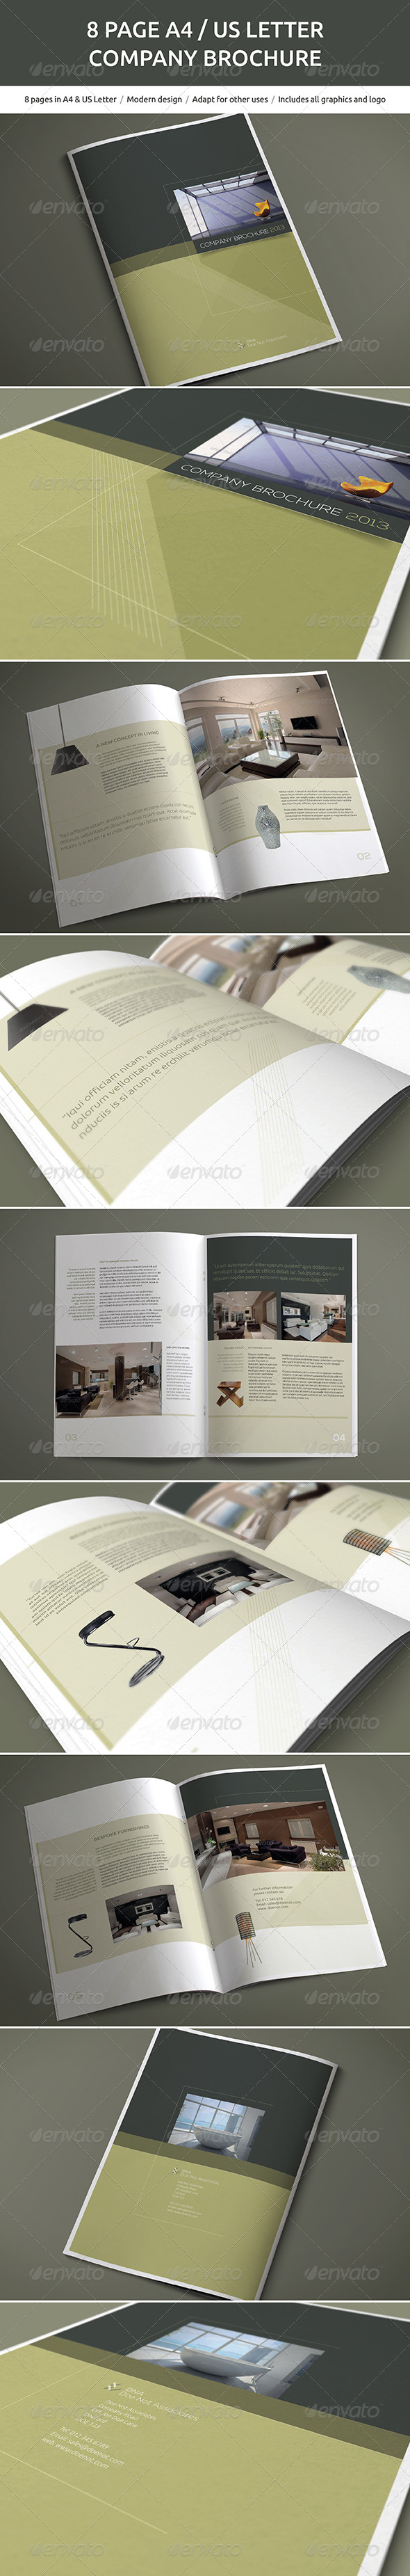 GraphicRiver 8 Page A4 and US Letter Company Brochure 5681588